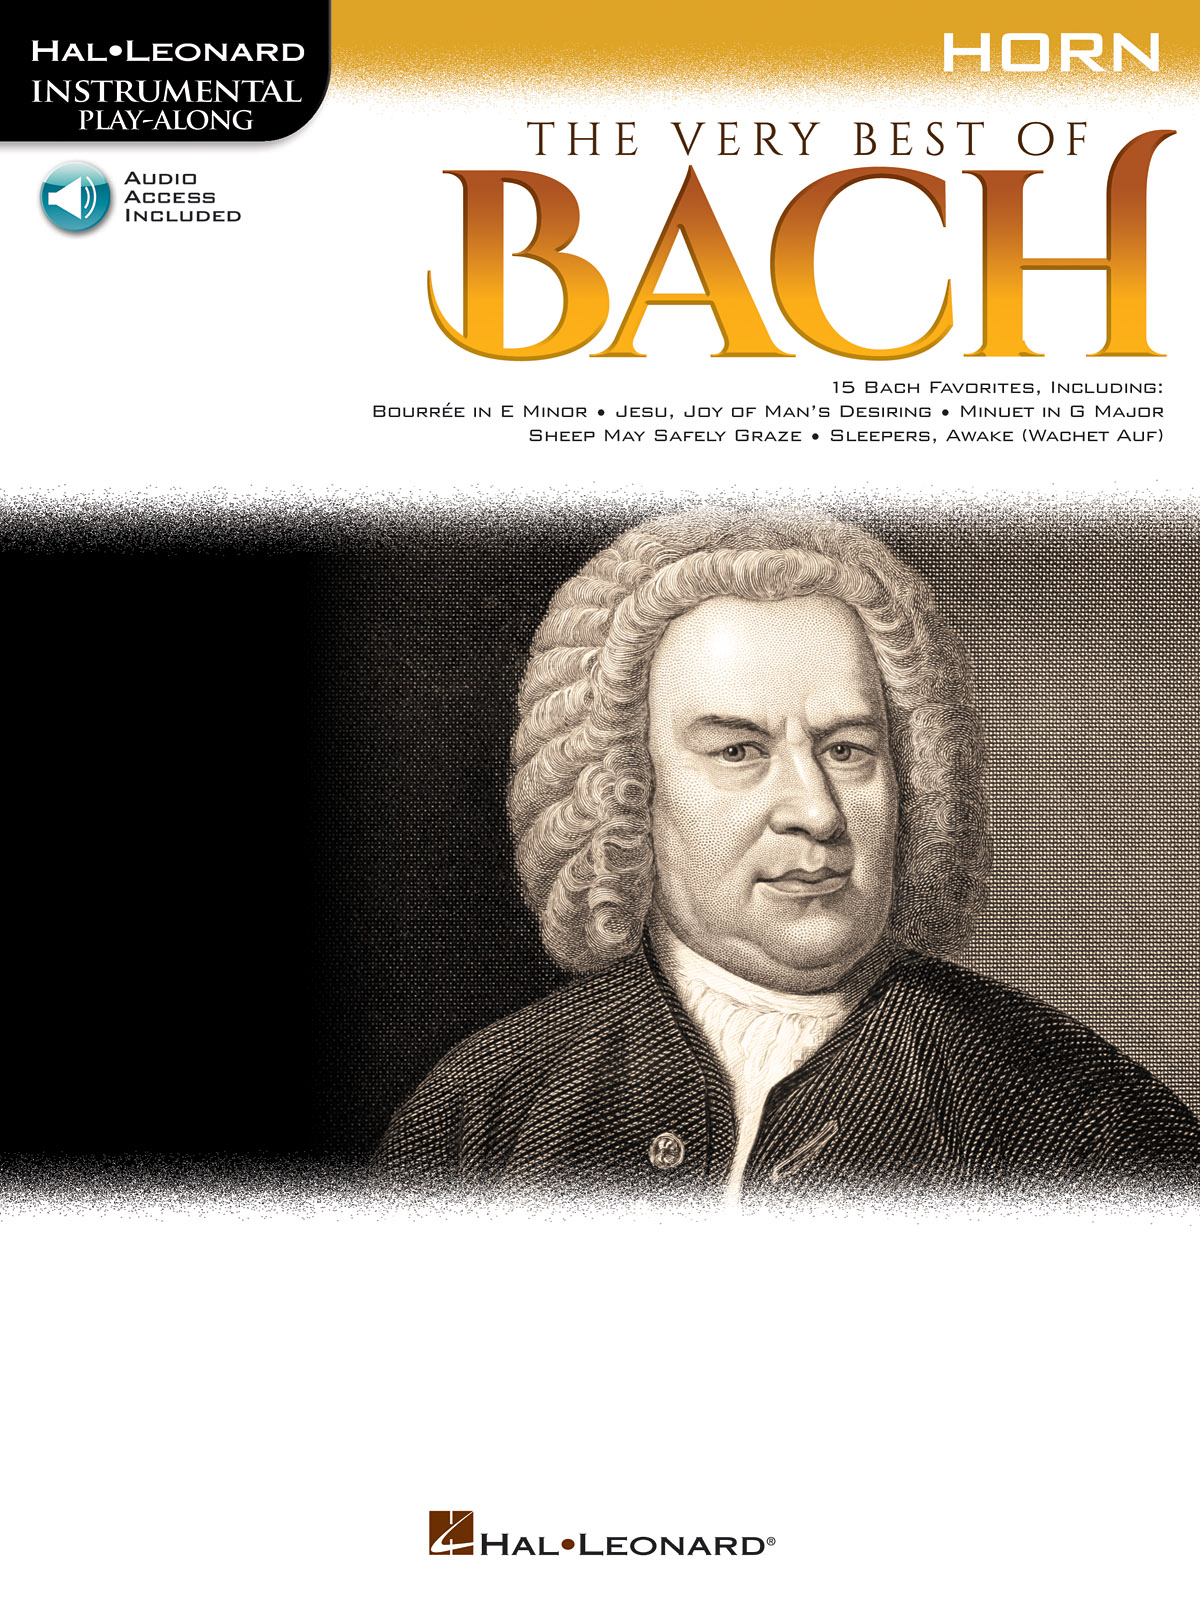 The Very Best of Bach: Instrumental Play-Along For Horn + Au